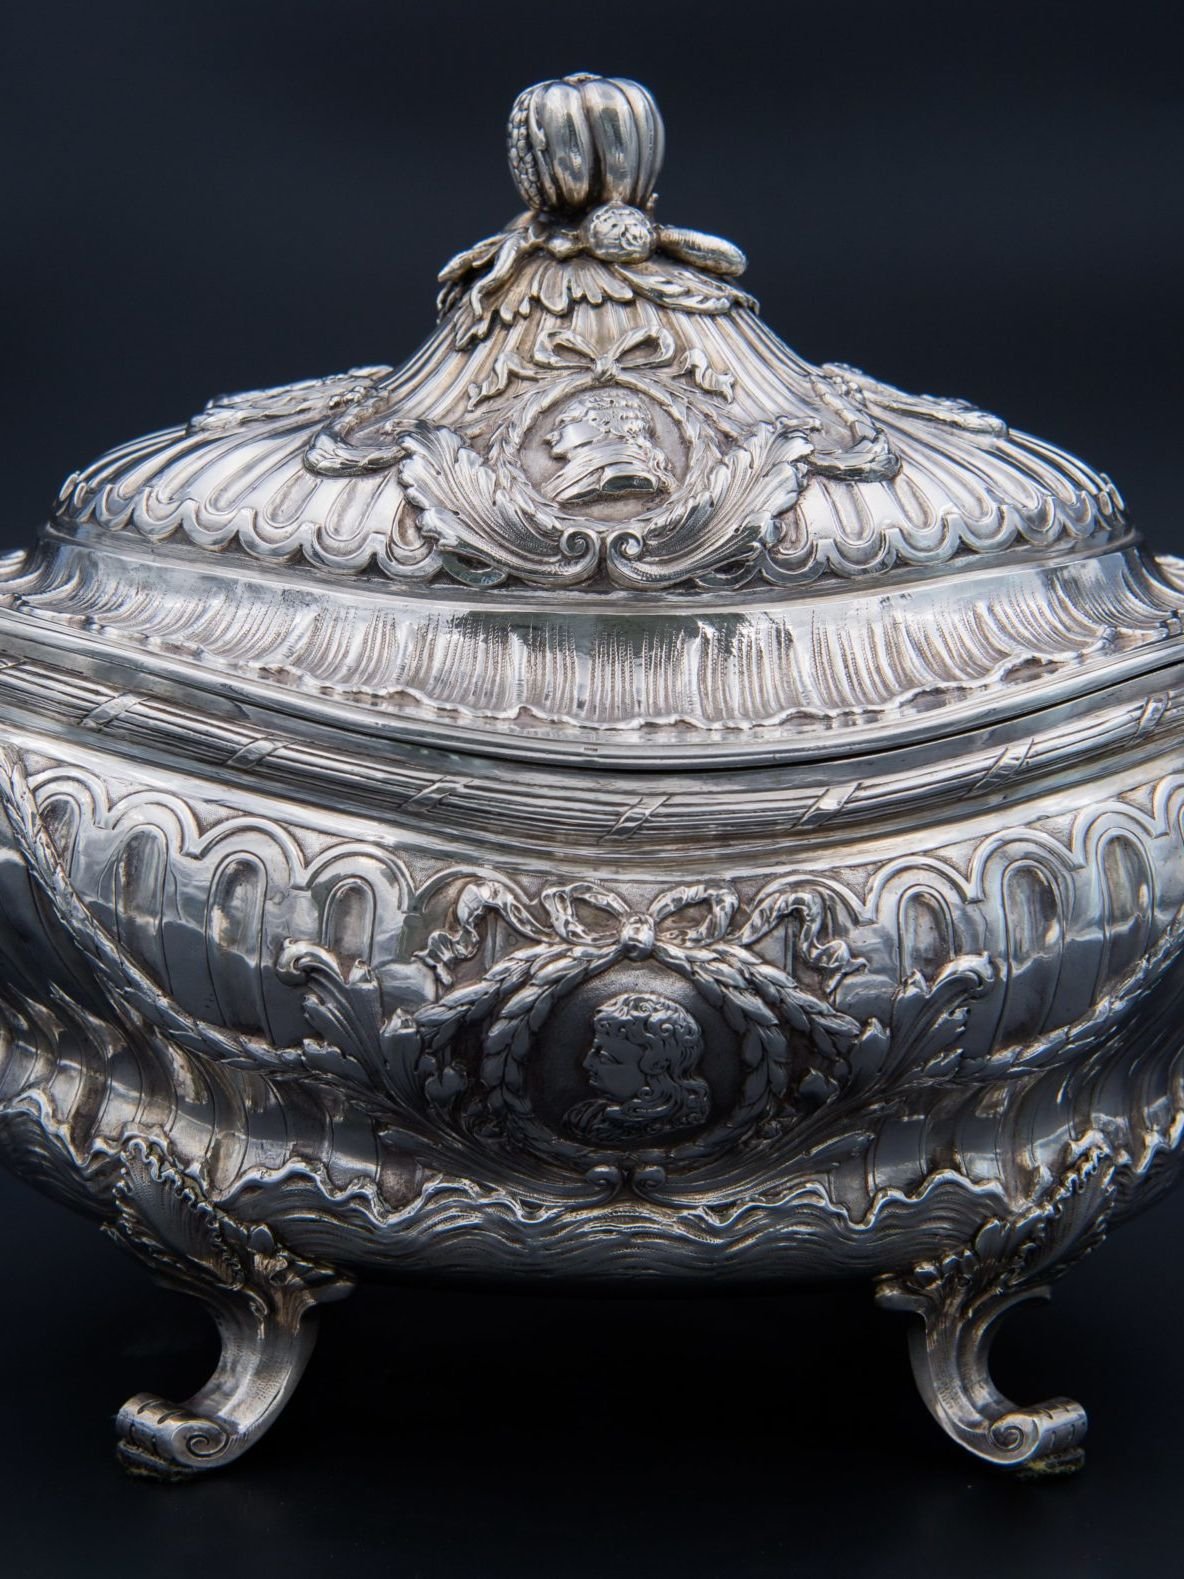 Solid silver vegetable dish, late 18th century.